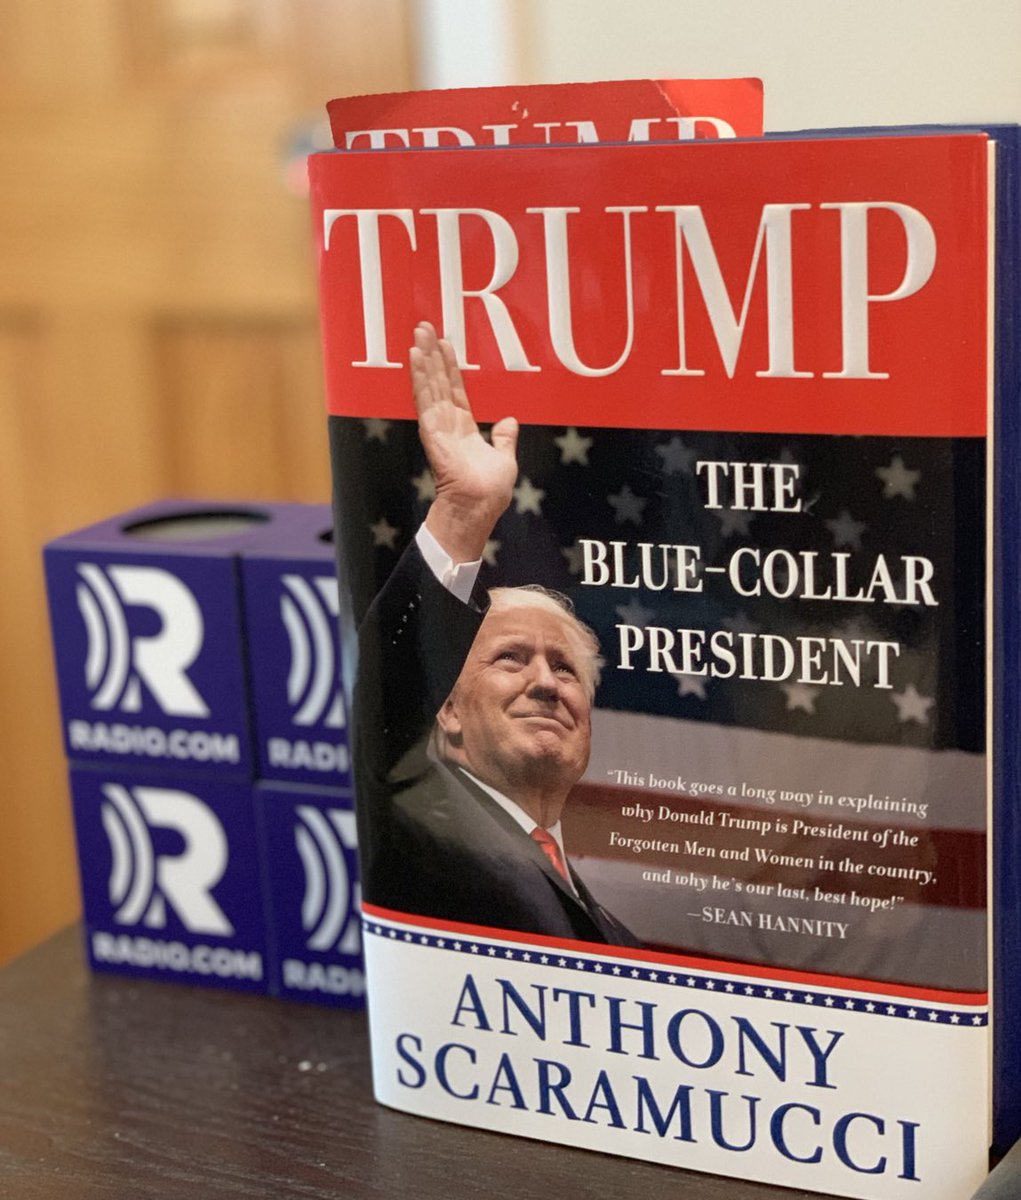 "With @POTUS @realDonaldTrump launching his 2020 campaign in Orlando tomorrow, I am reminded of the connections Mr. Trump made with voters on the campaign trail, eloquently detailed in @Scaramucci's latest book ""The Blue-Collar President."" Great read. @moochandthemrs @Radiodotcom<br>http://pic.twitter.com/9phVxnpp0B"